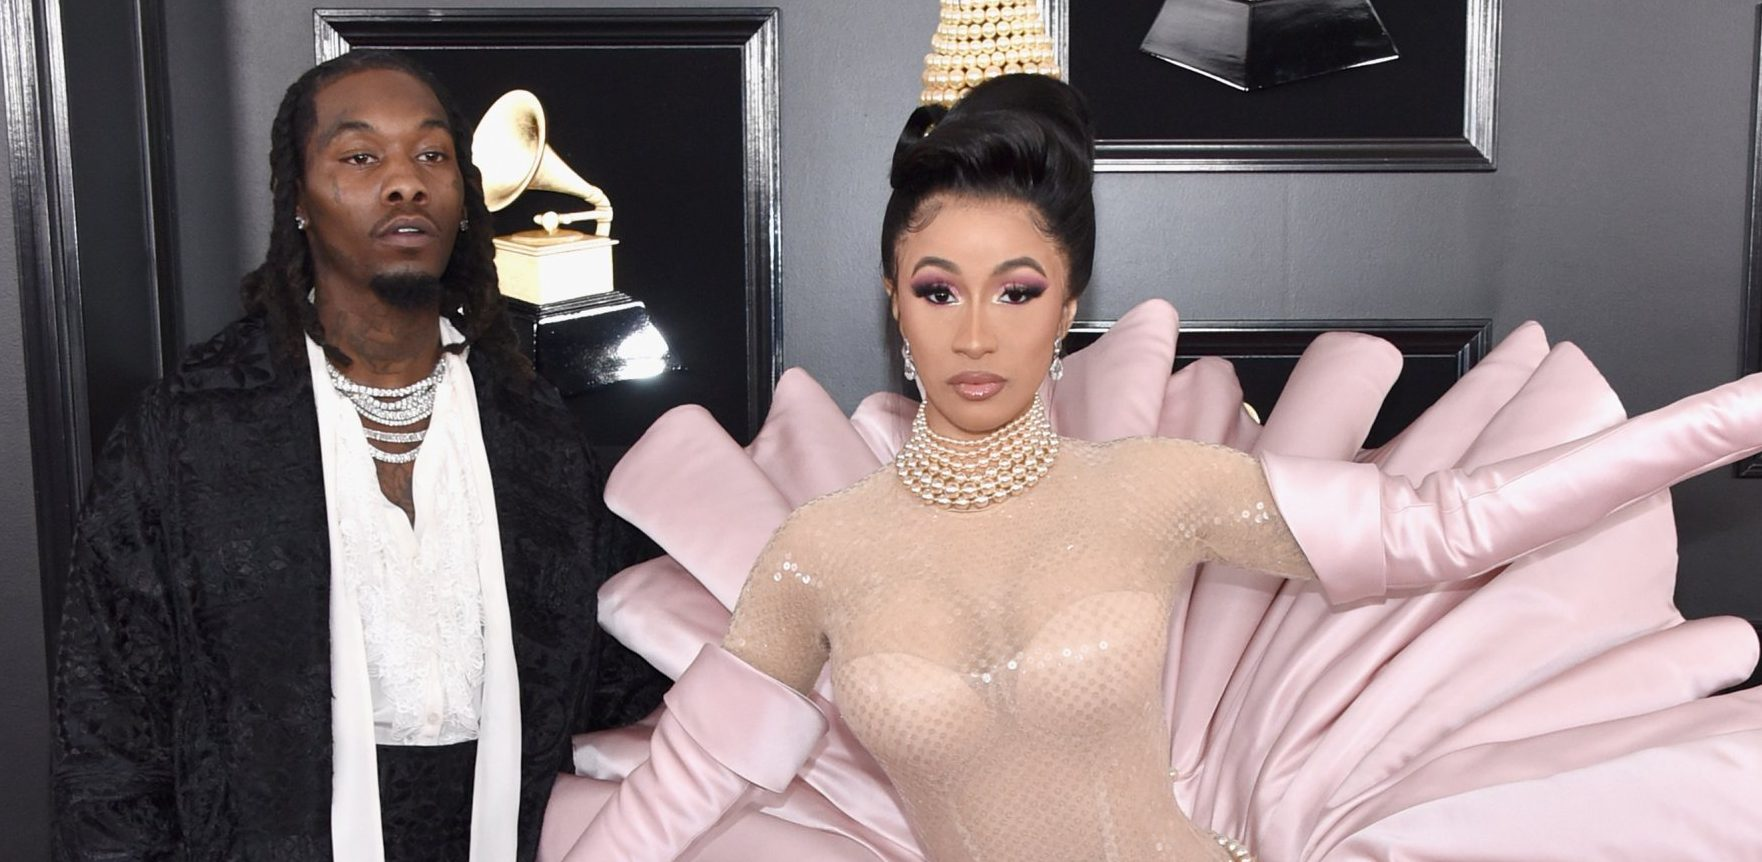 LOS ANGELES, CA - FEBRUARY 10: Offset of Migos (L) and Cardi B attend the 61st Annual GRAMMY Awards at Staples Center on February 10, 2019 in Los Angeles, California. (Photo by John Shearer/Getty Images for The Recording Academy)